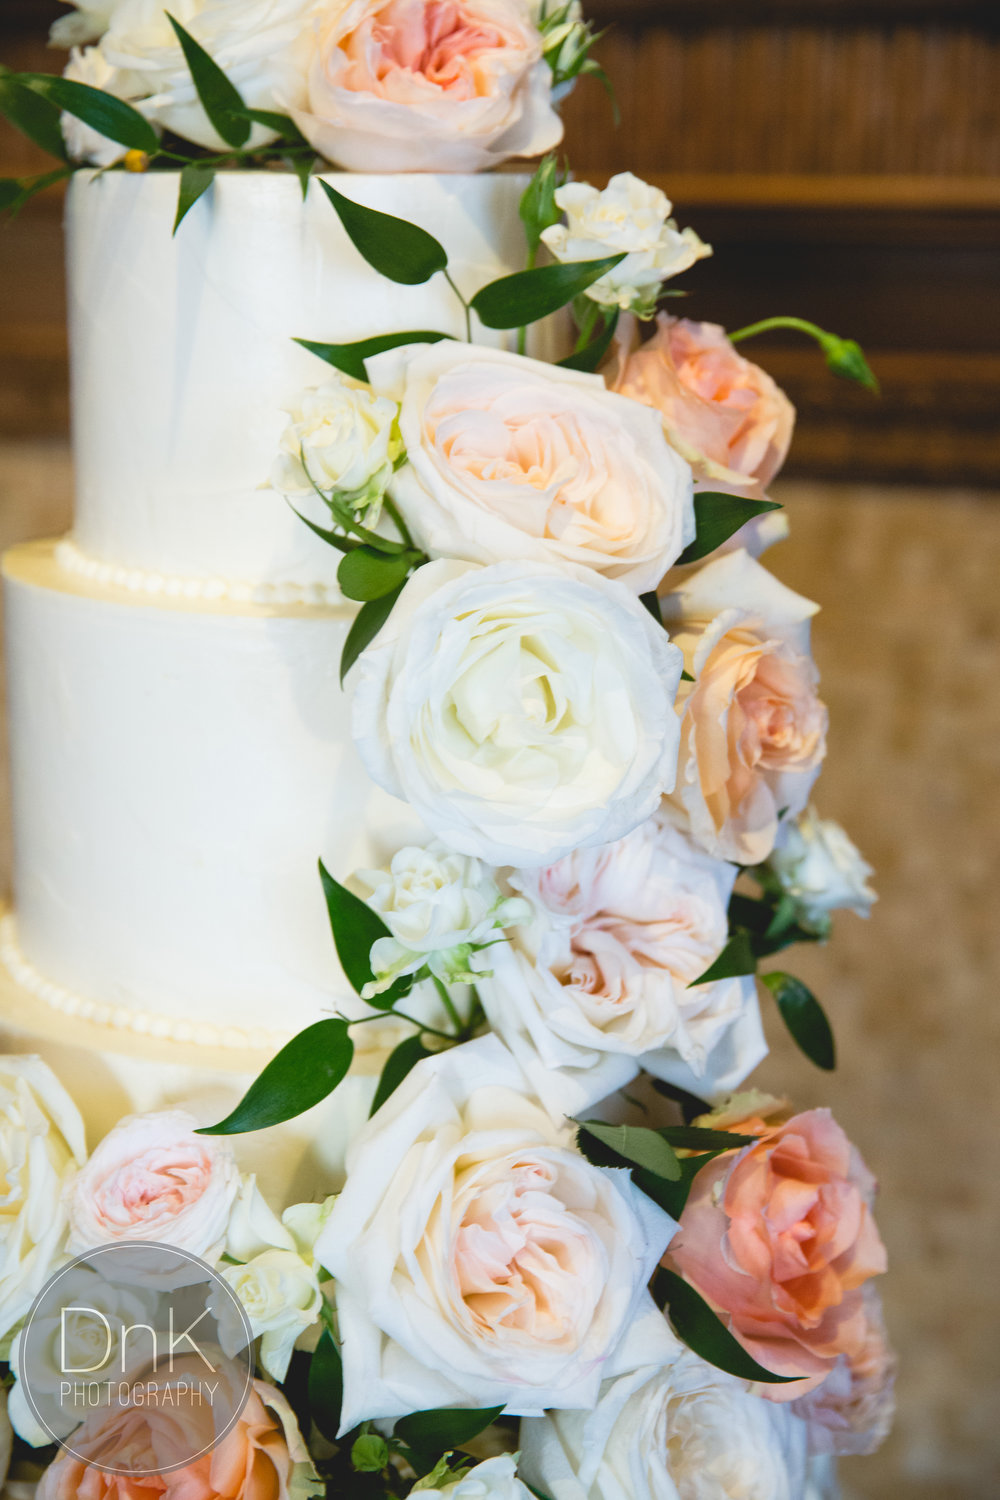 Captured by  DnK Photography  | Cake design by  Enticing Icing  | Fresh florals by  Sadie's Floral